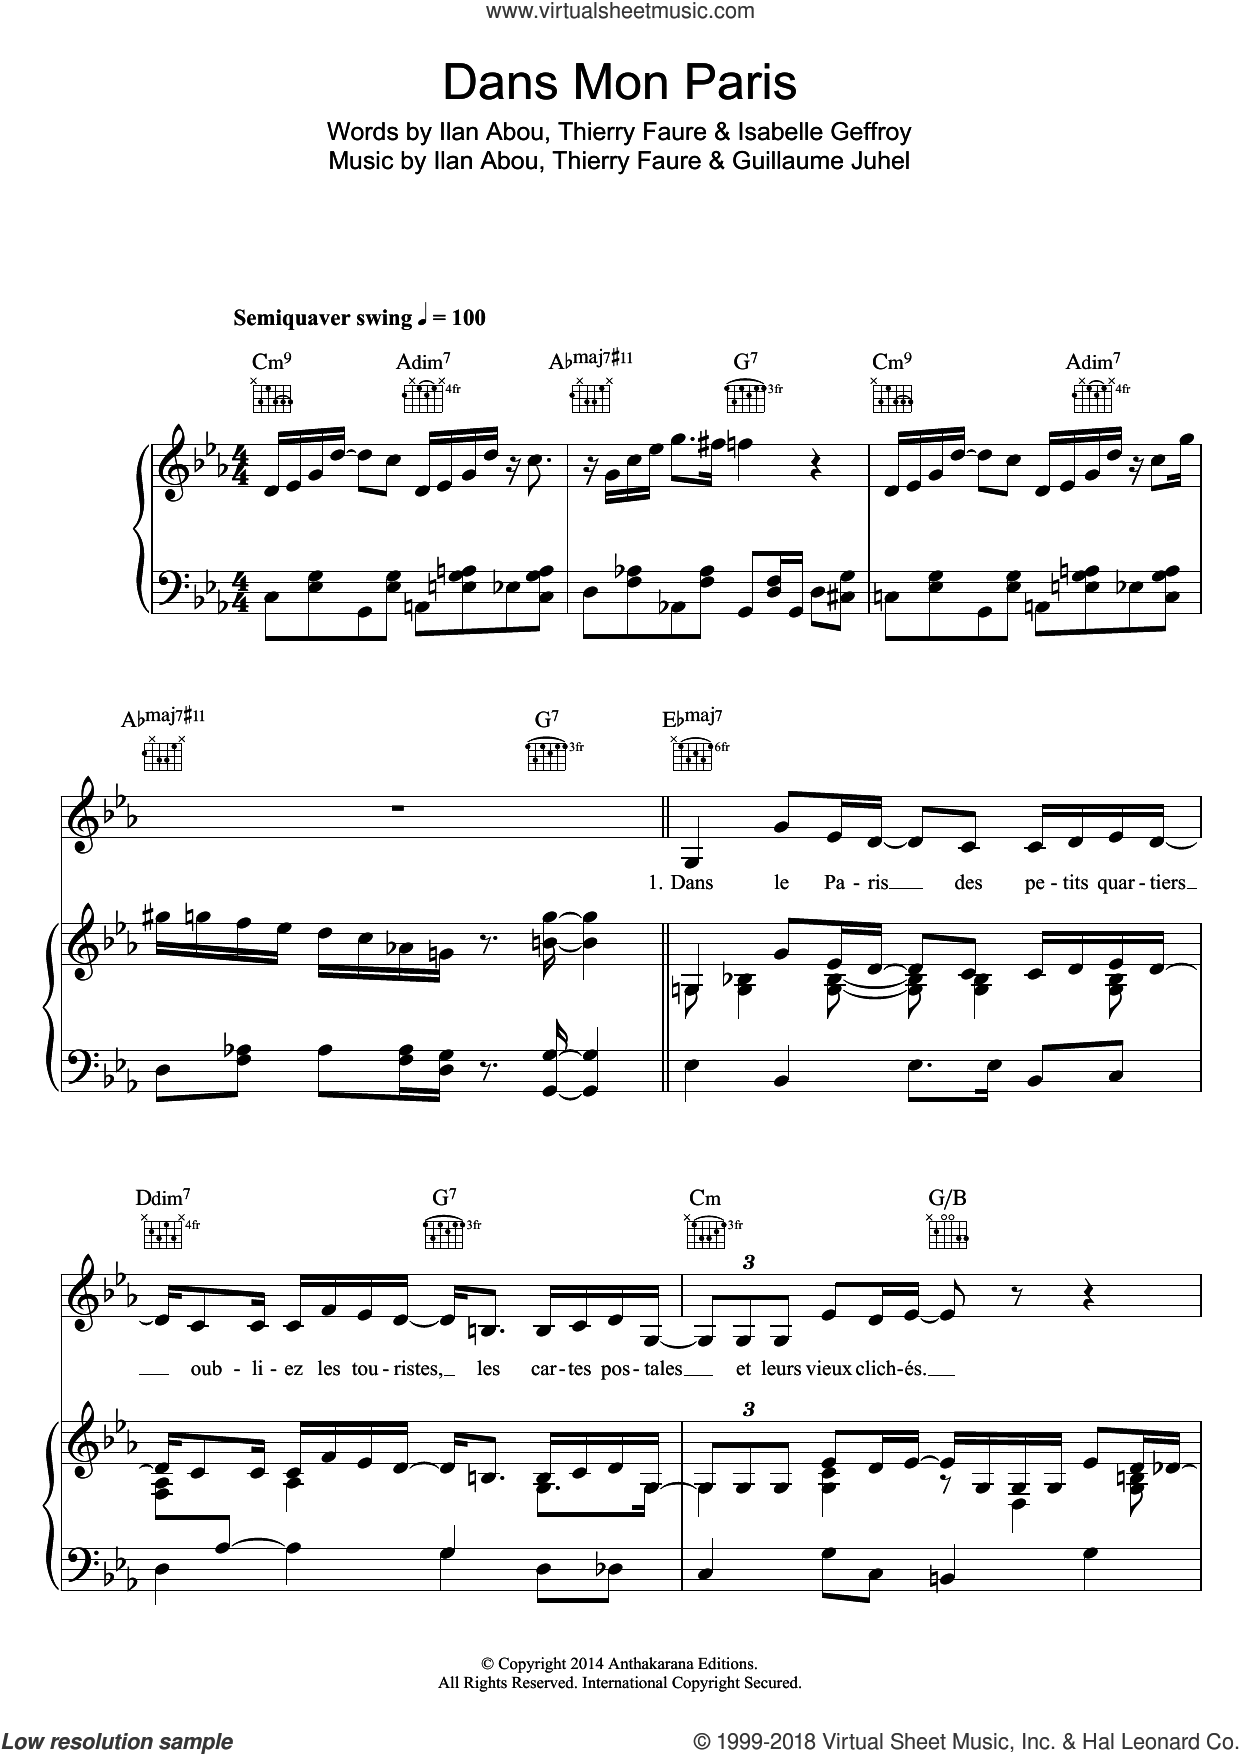 Dans Mon Paris (Swing Manouche Version) sheet music for voice, piano or guitar by Zaz, Guillaume Juhel, Ilan Abou, Isabelle Geffroy and Thierry Faure, intermediate skill level